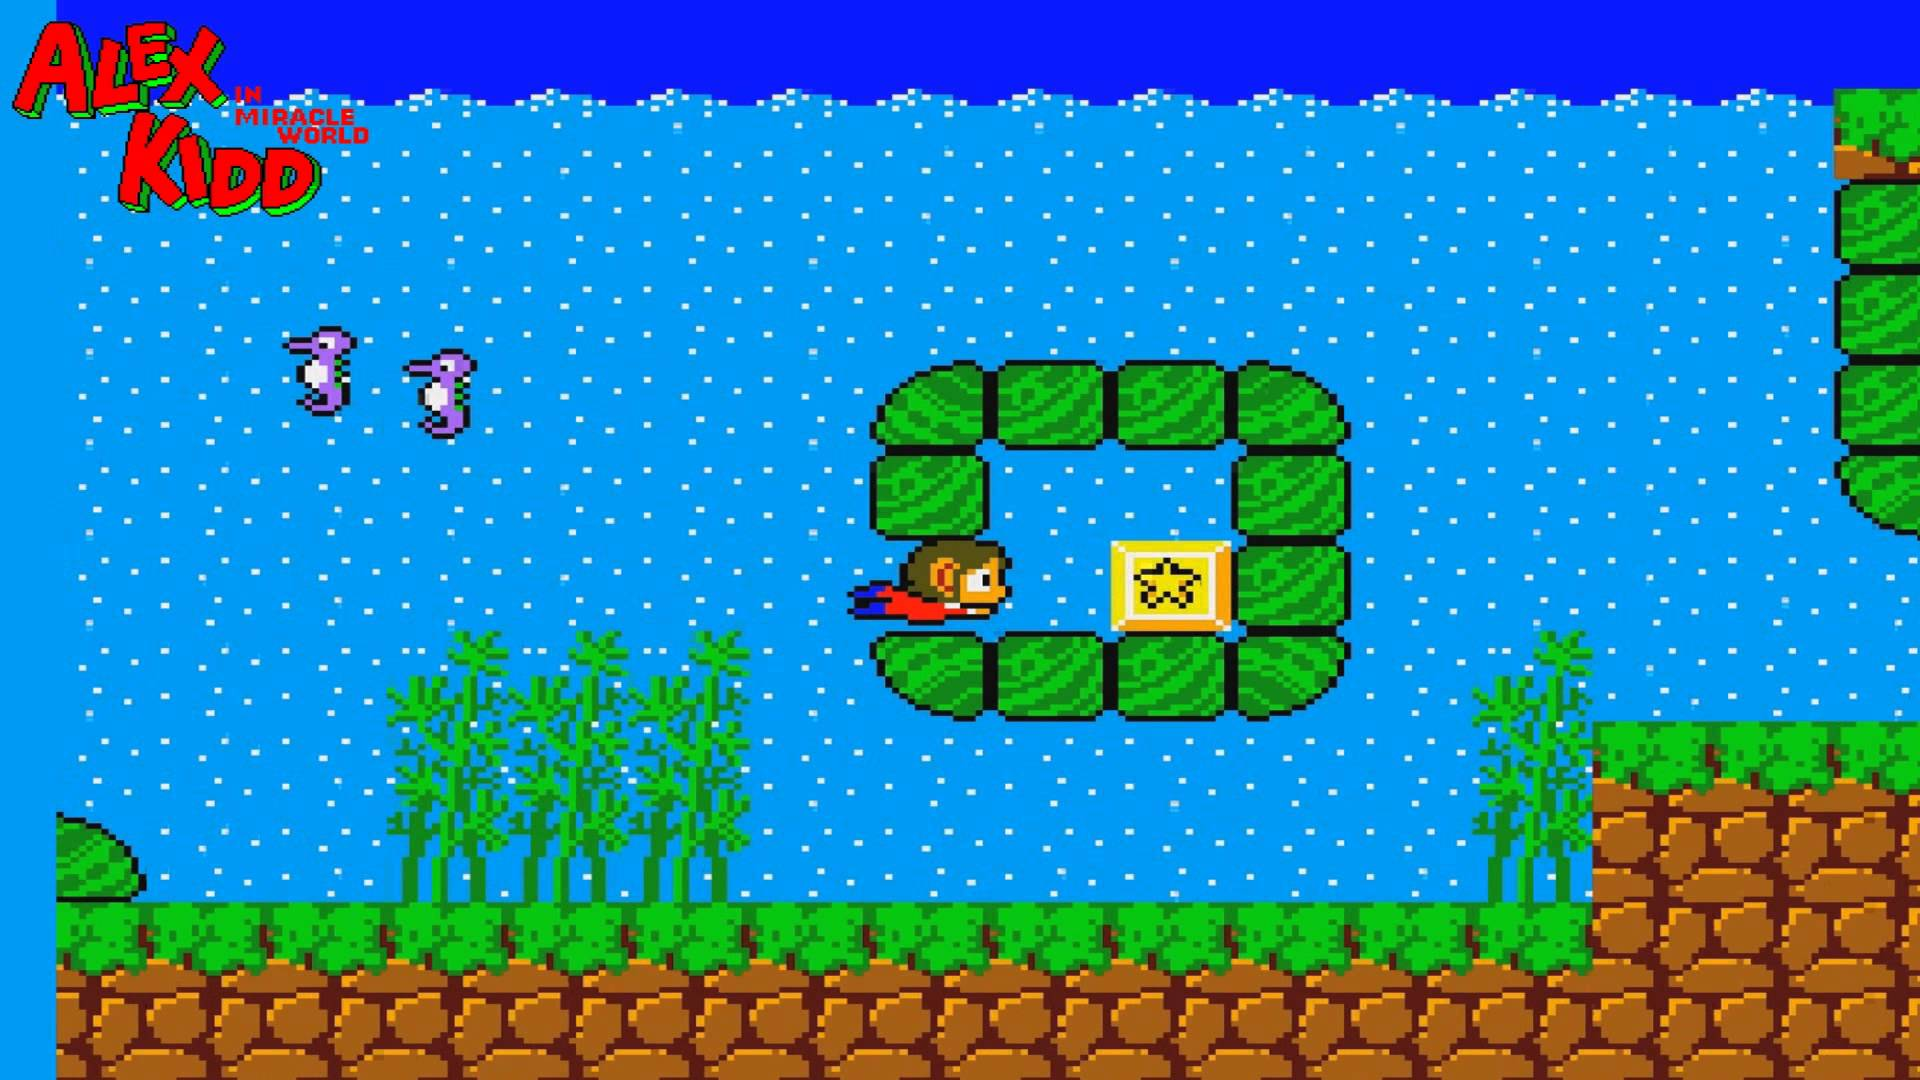 Alex Kidd in Miracle World in acqua